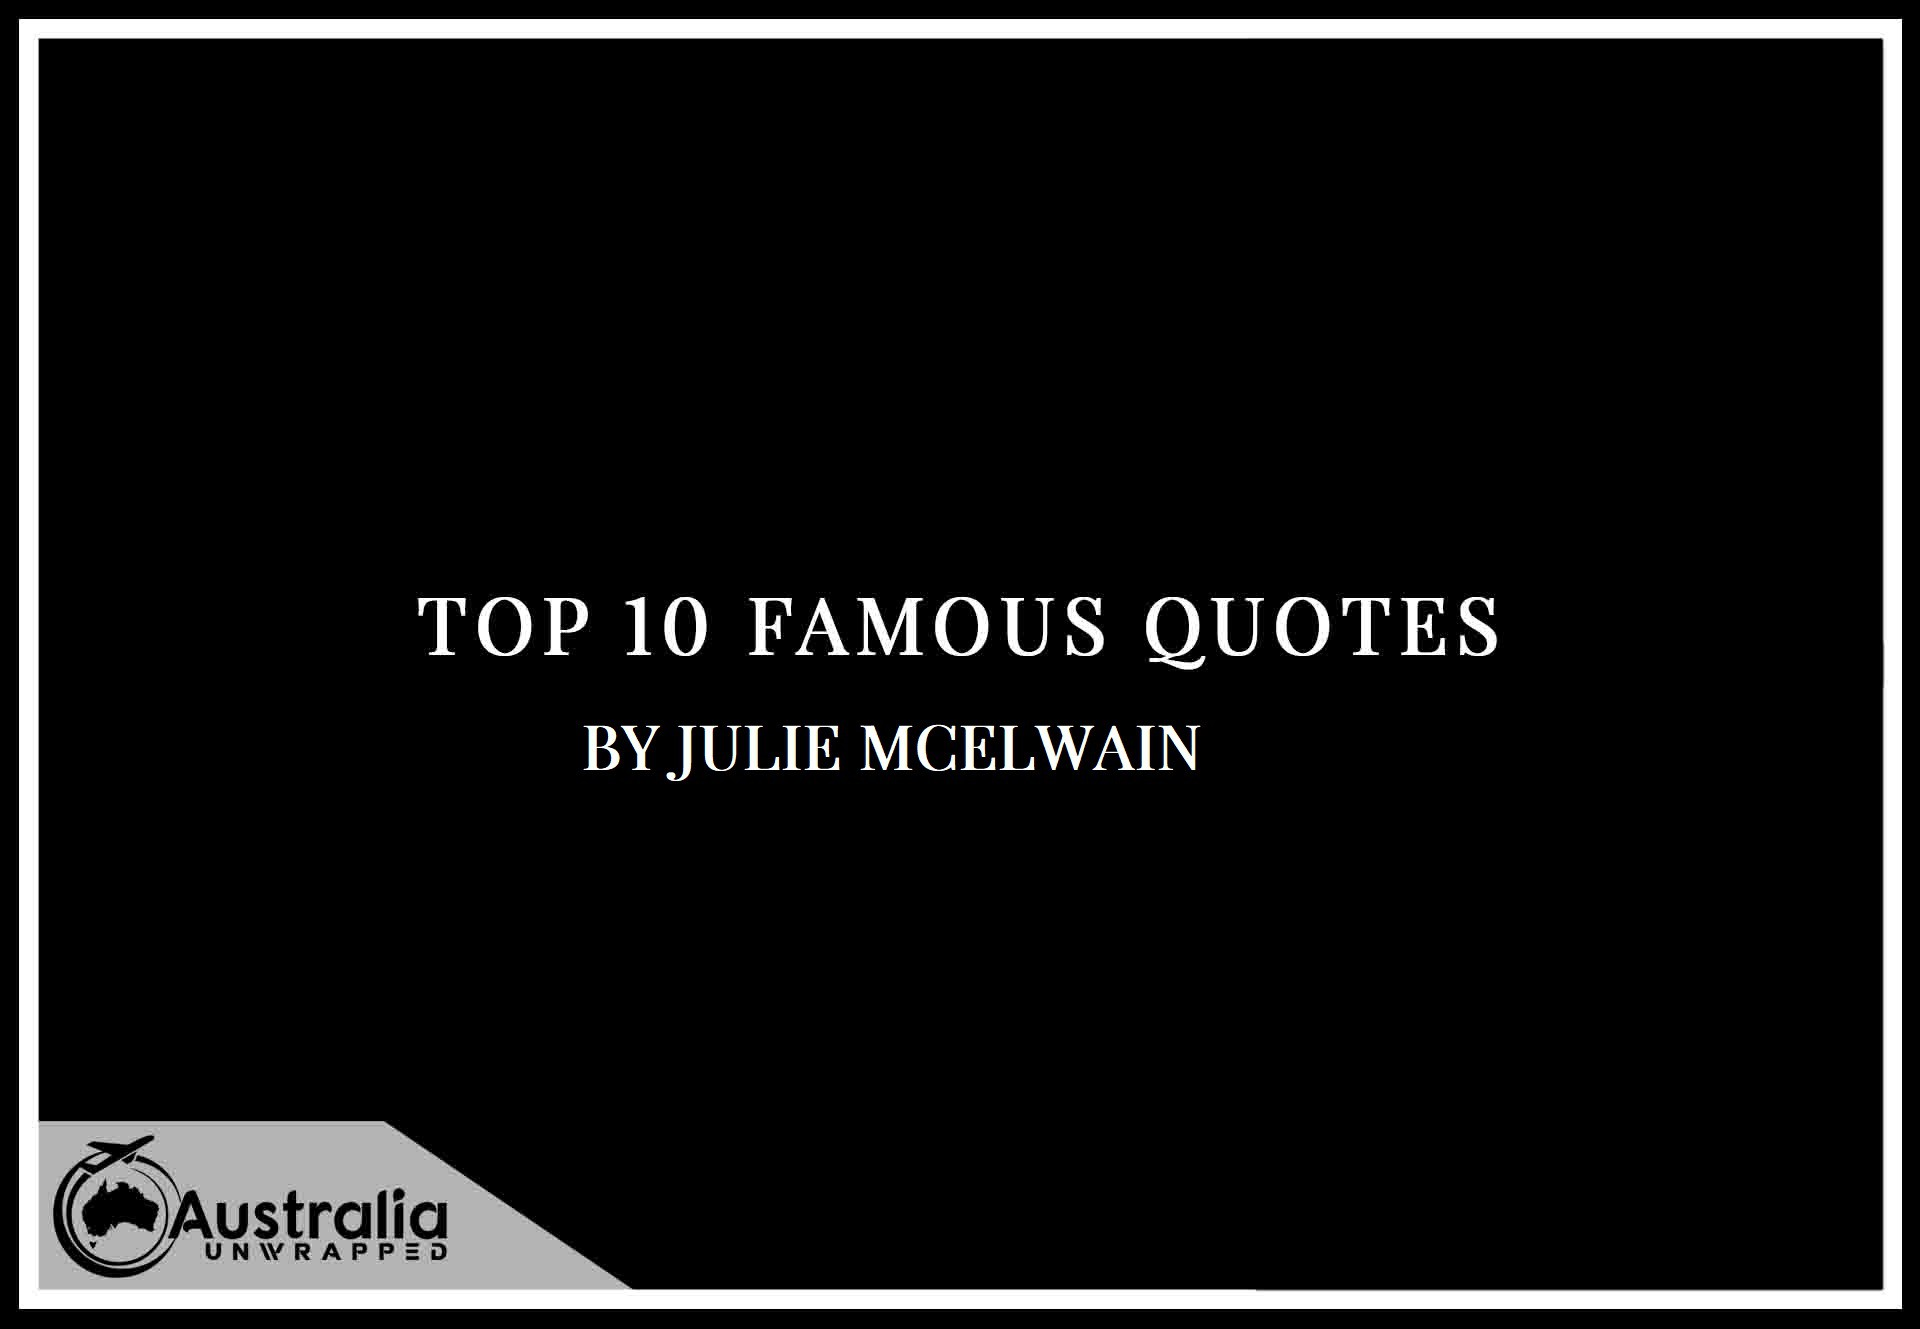 Top 10 Famous Quotes by Author Julie McElwain